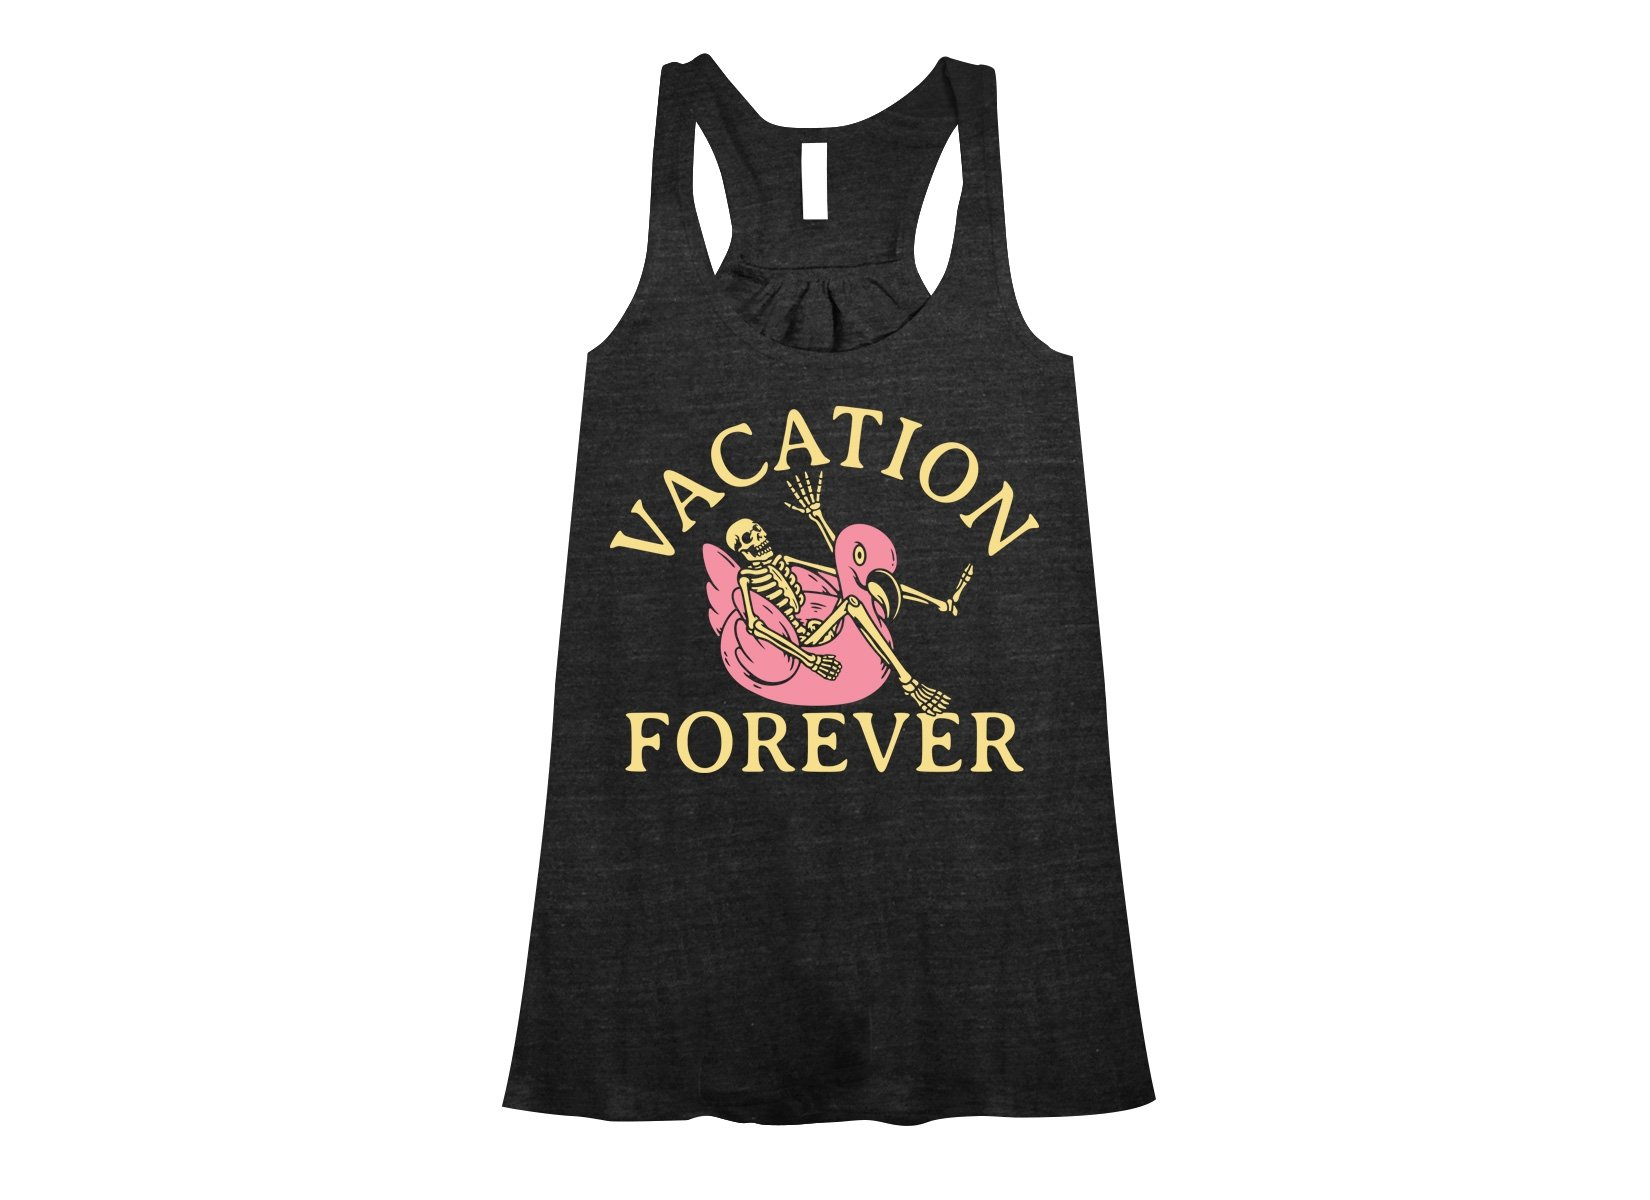 Vacation Forever on Womens Tanks T-Shirt